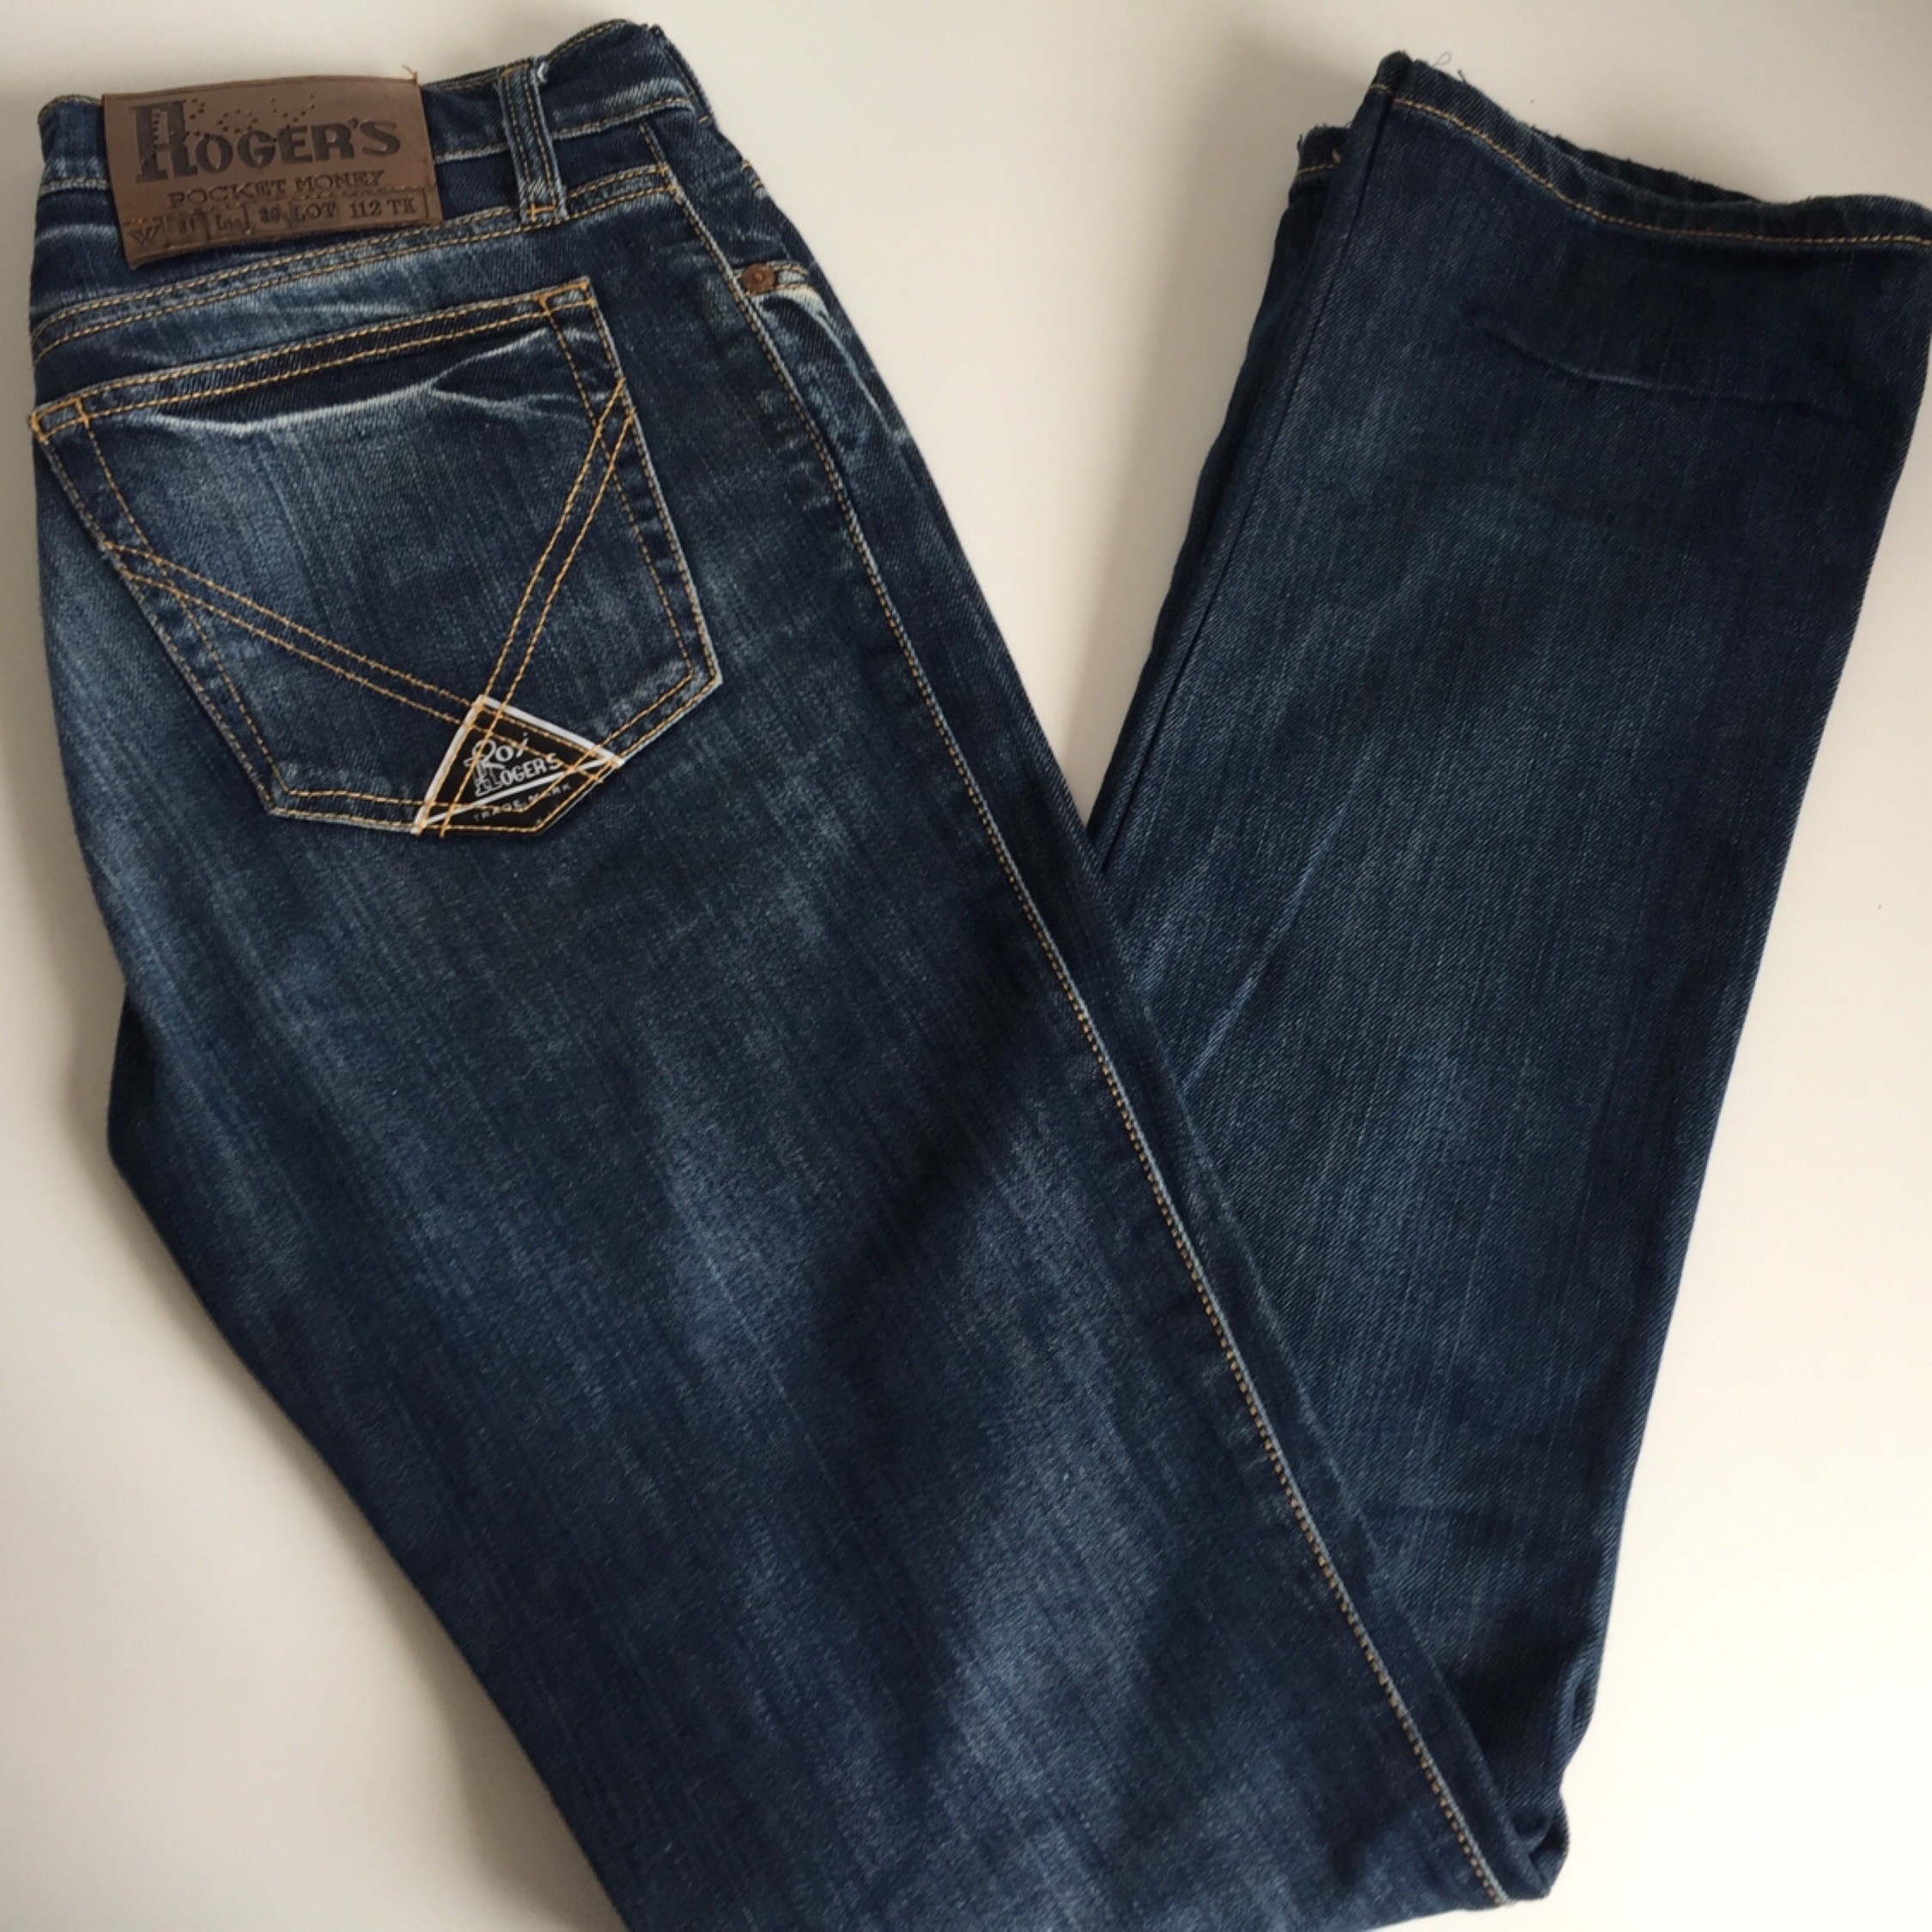 new style b6cae a78c6 Jeans Roy Rogers